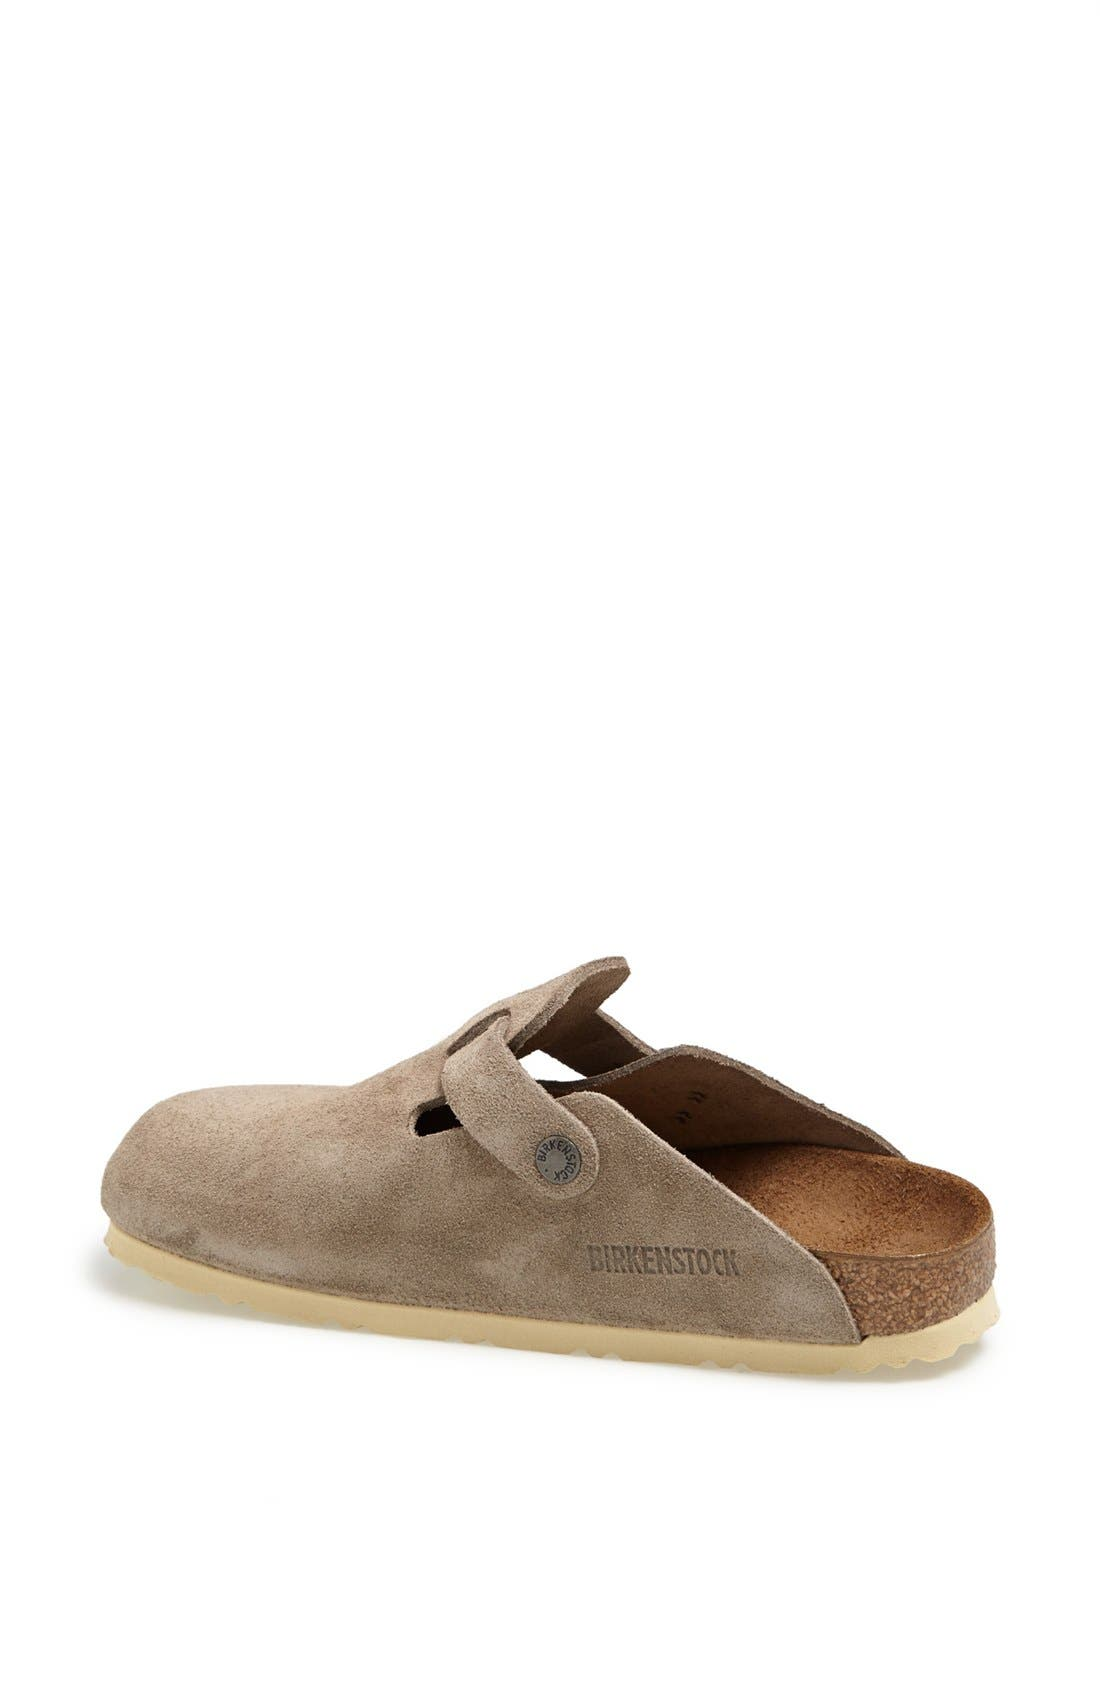 'Boston' Classic Oiled Leather Clog,                             Alternate thumbnail 48, color,